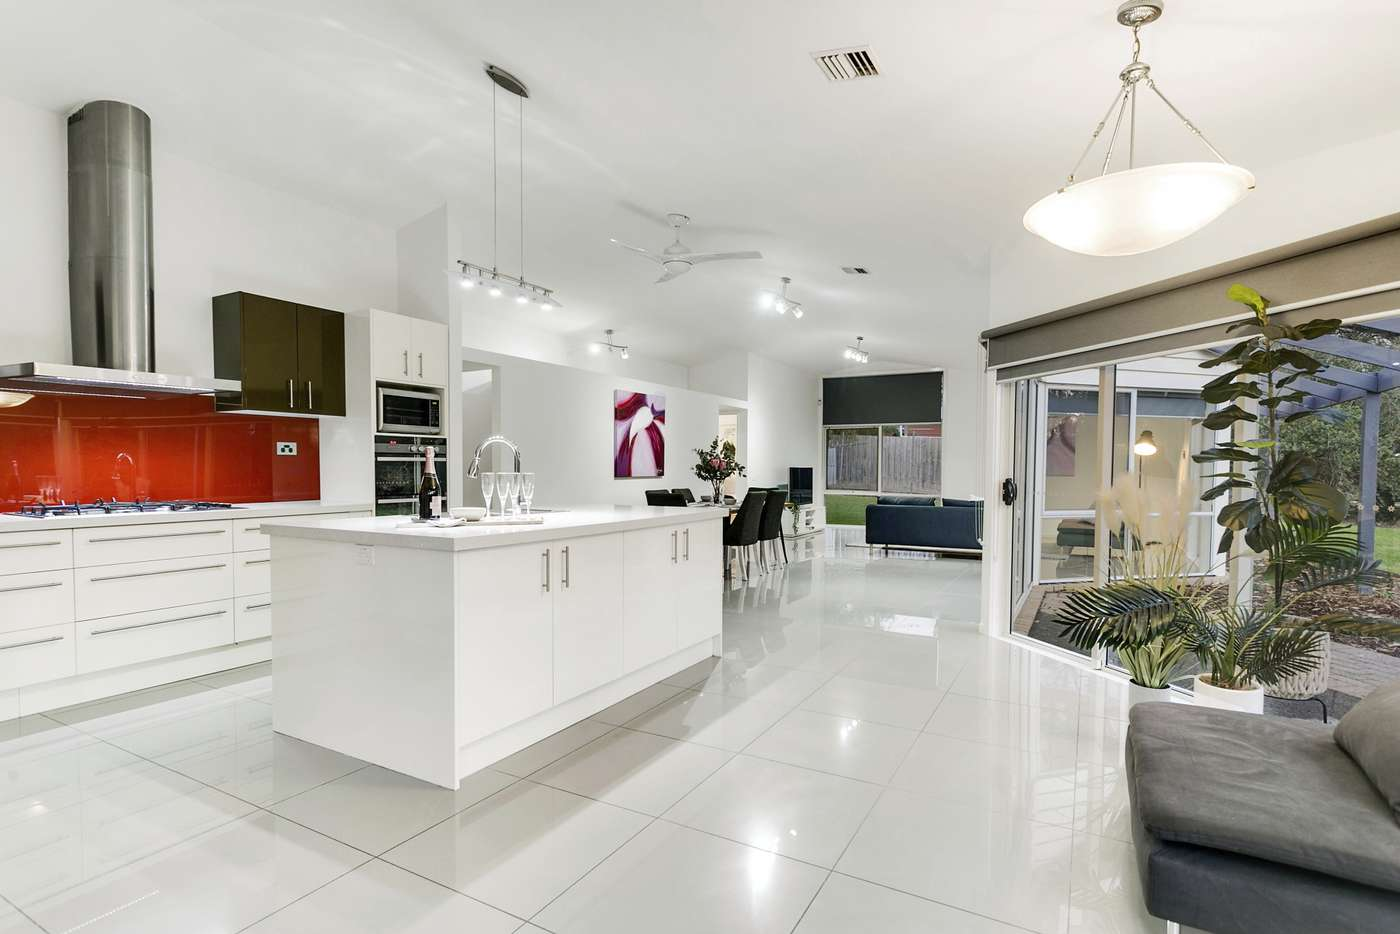 Main view of Homely house listing, 12 Kirkstall Close, Frankston South VIC 3199